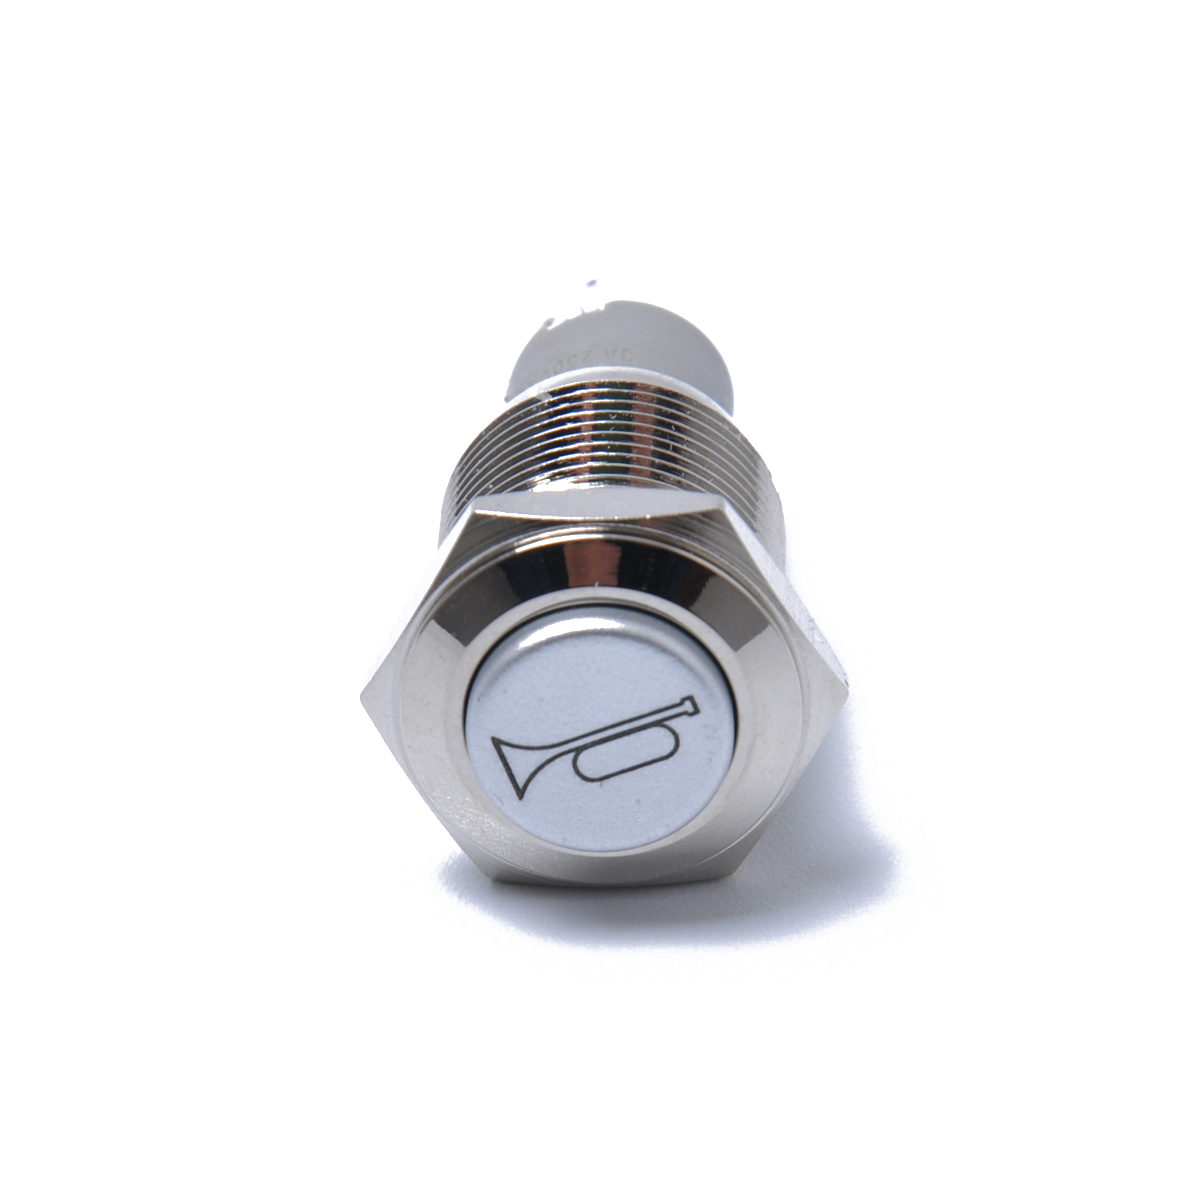 Viping Push Button Switch Car Horn Button Switch momentary Switch Connector 12V DIY Switch 16mm Red LED On//Off Reset Switch Button Metal Speaker Horn Switch Power Metal Toggle Switch Car Boat Moto